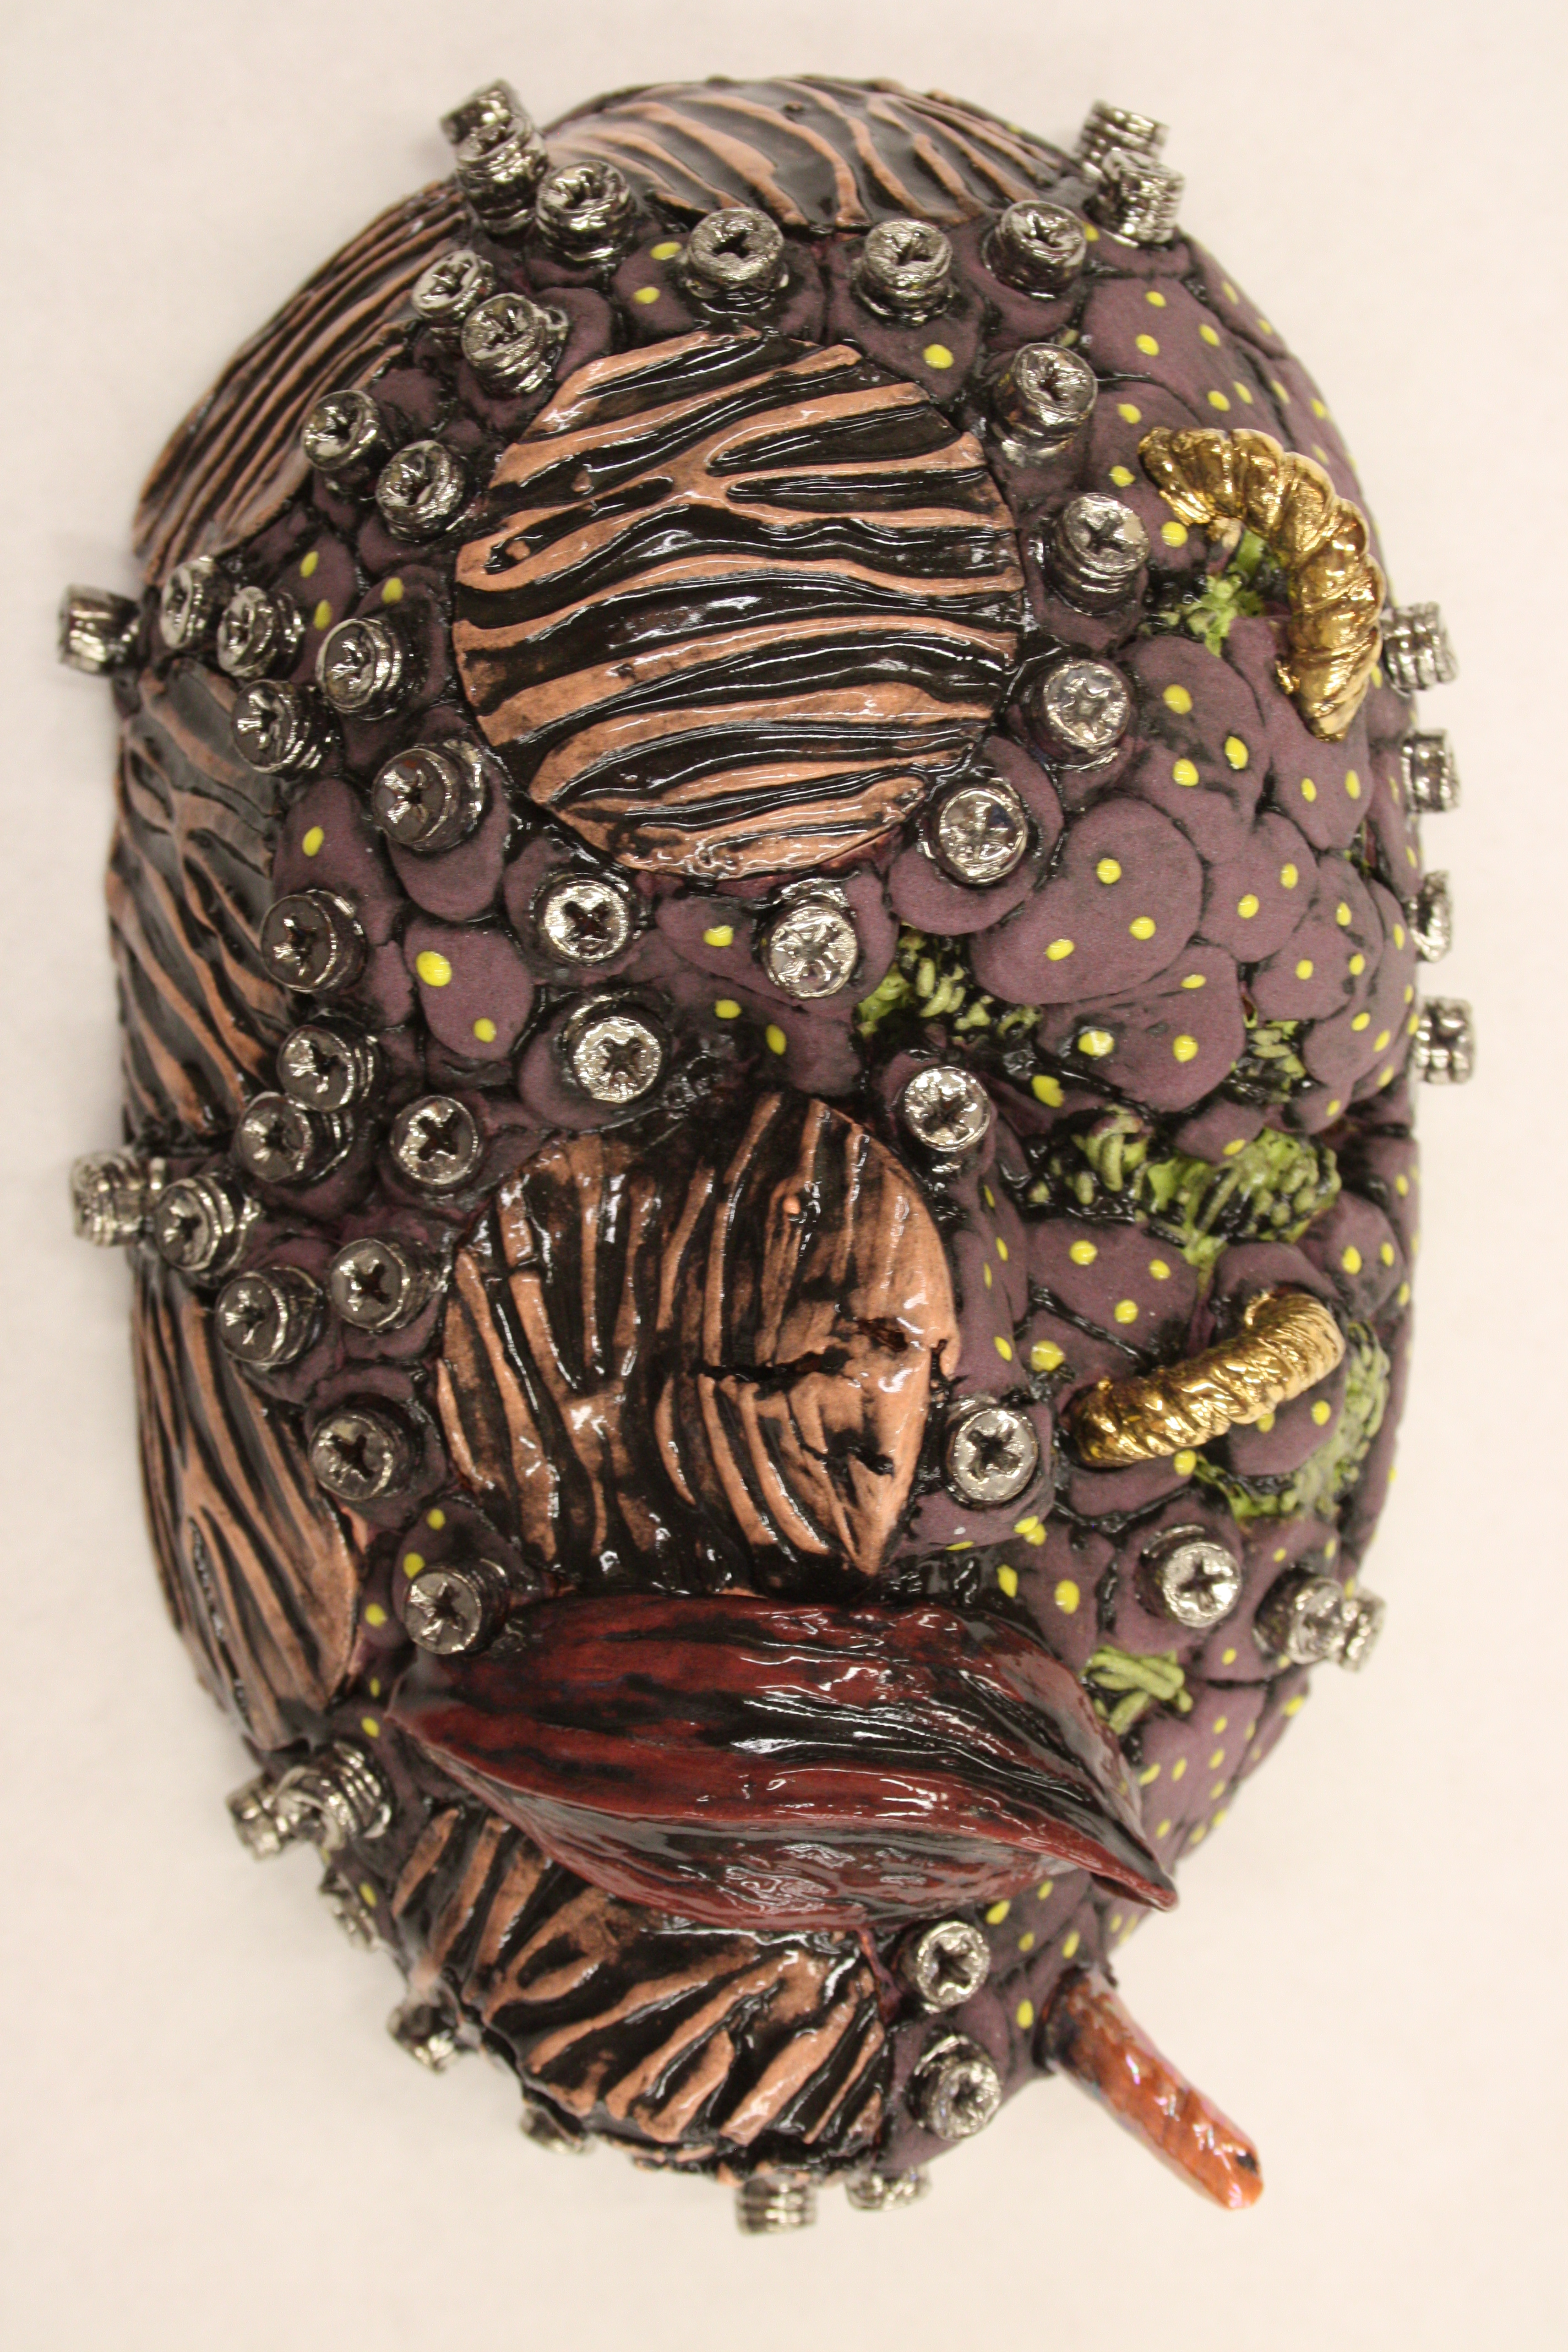 Clay mask covered in branches and organic looking pods by Steve Glazer.